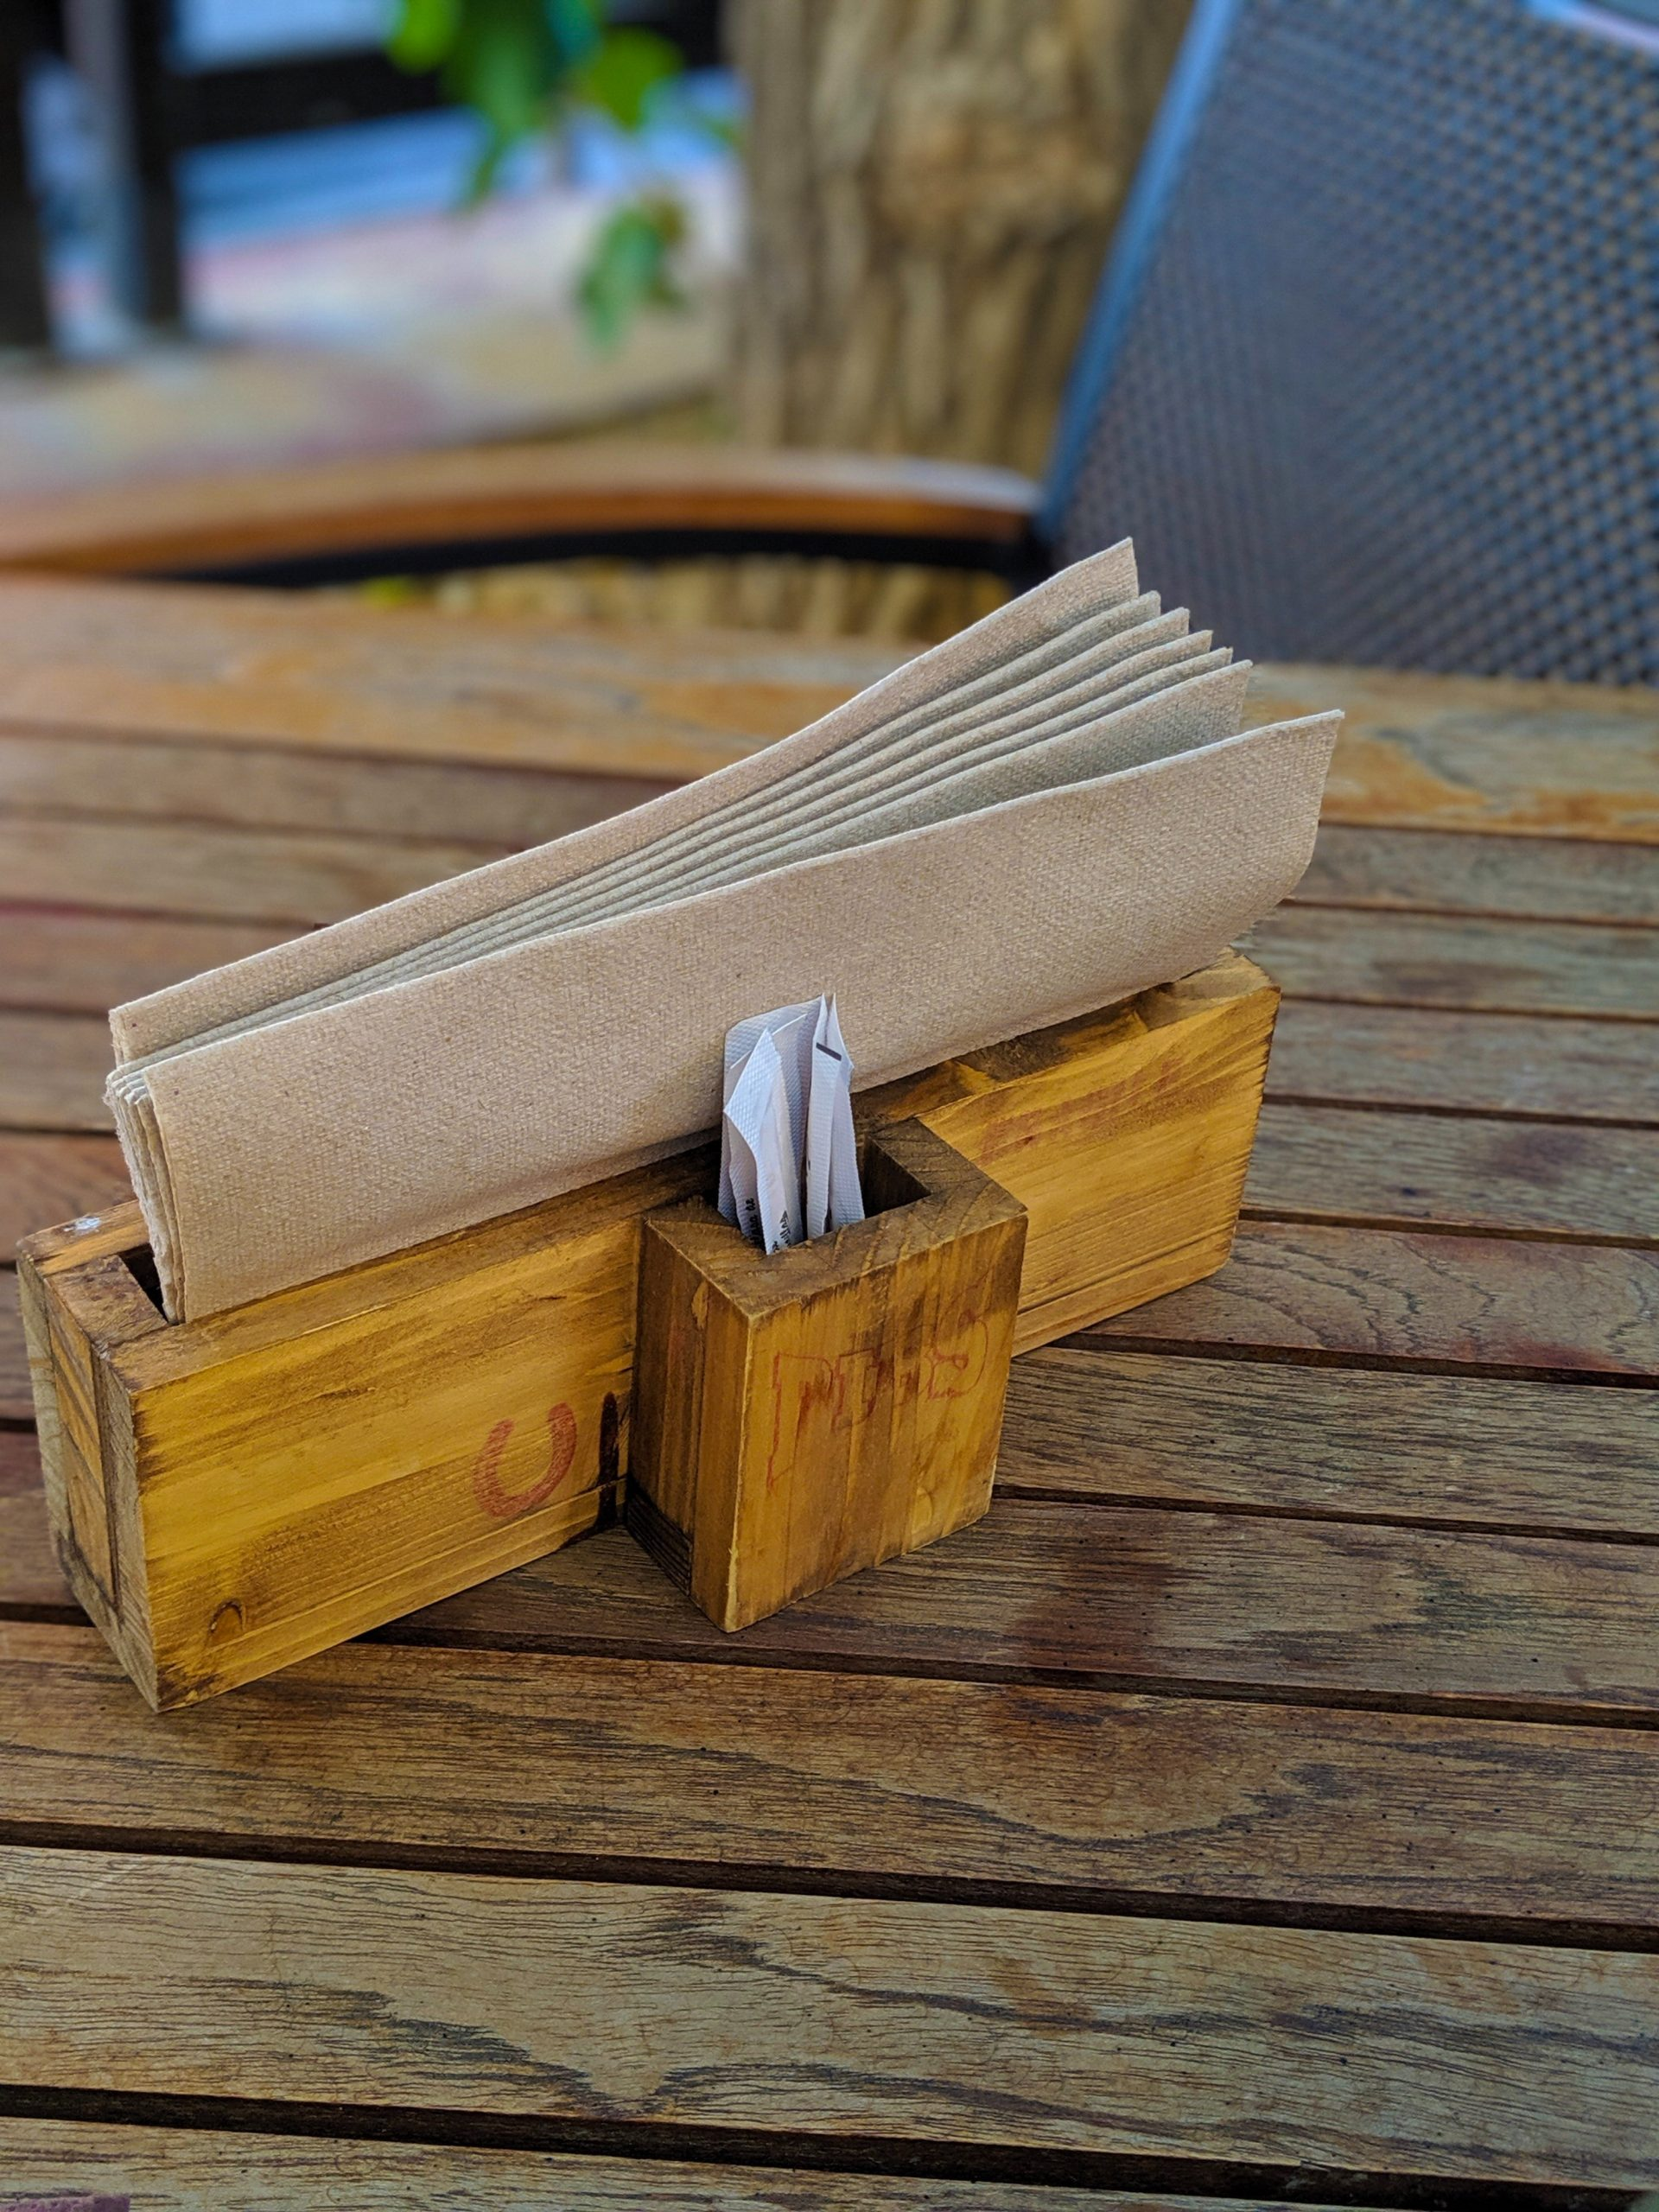 Unique Features of Recycled Timber Every Homeowner Should Know is a feature post